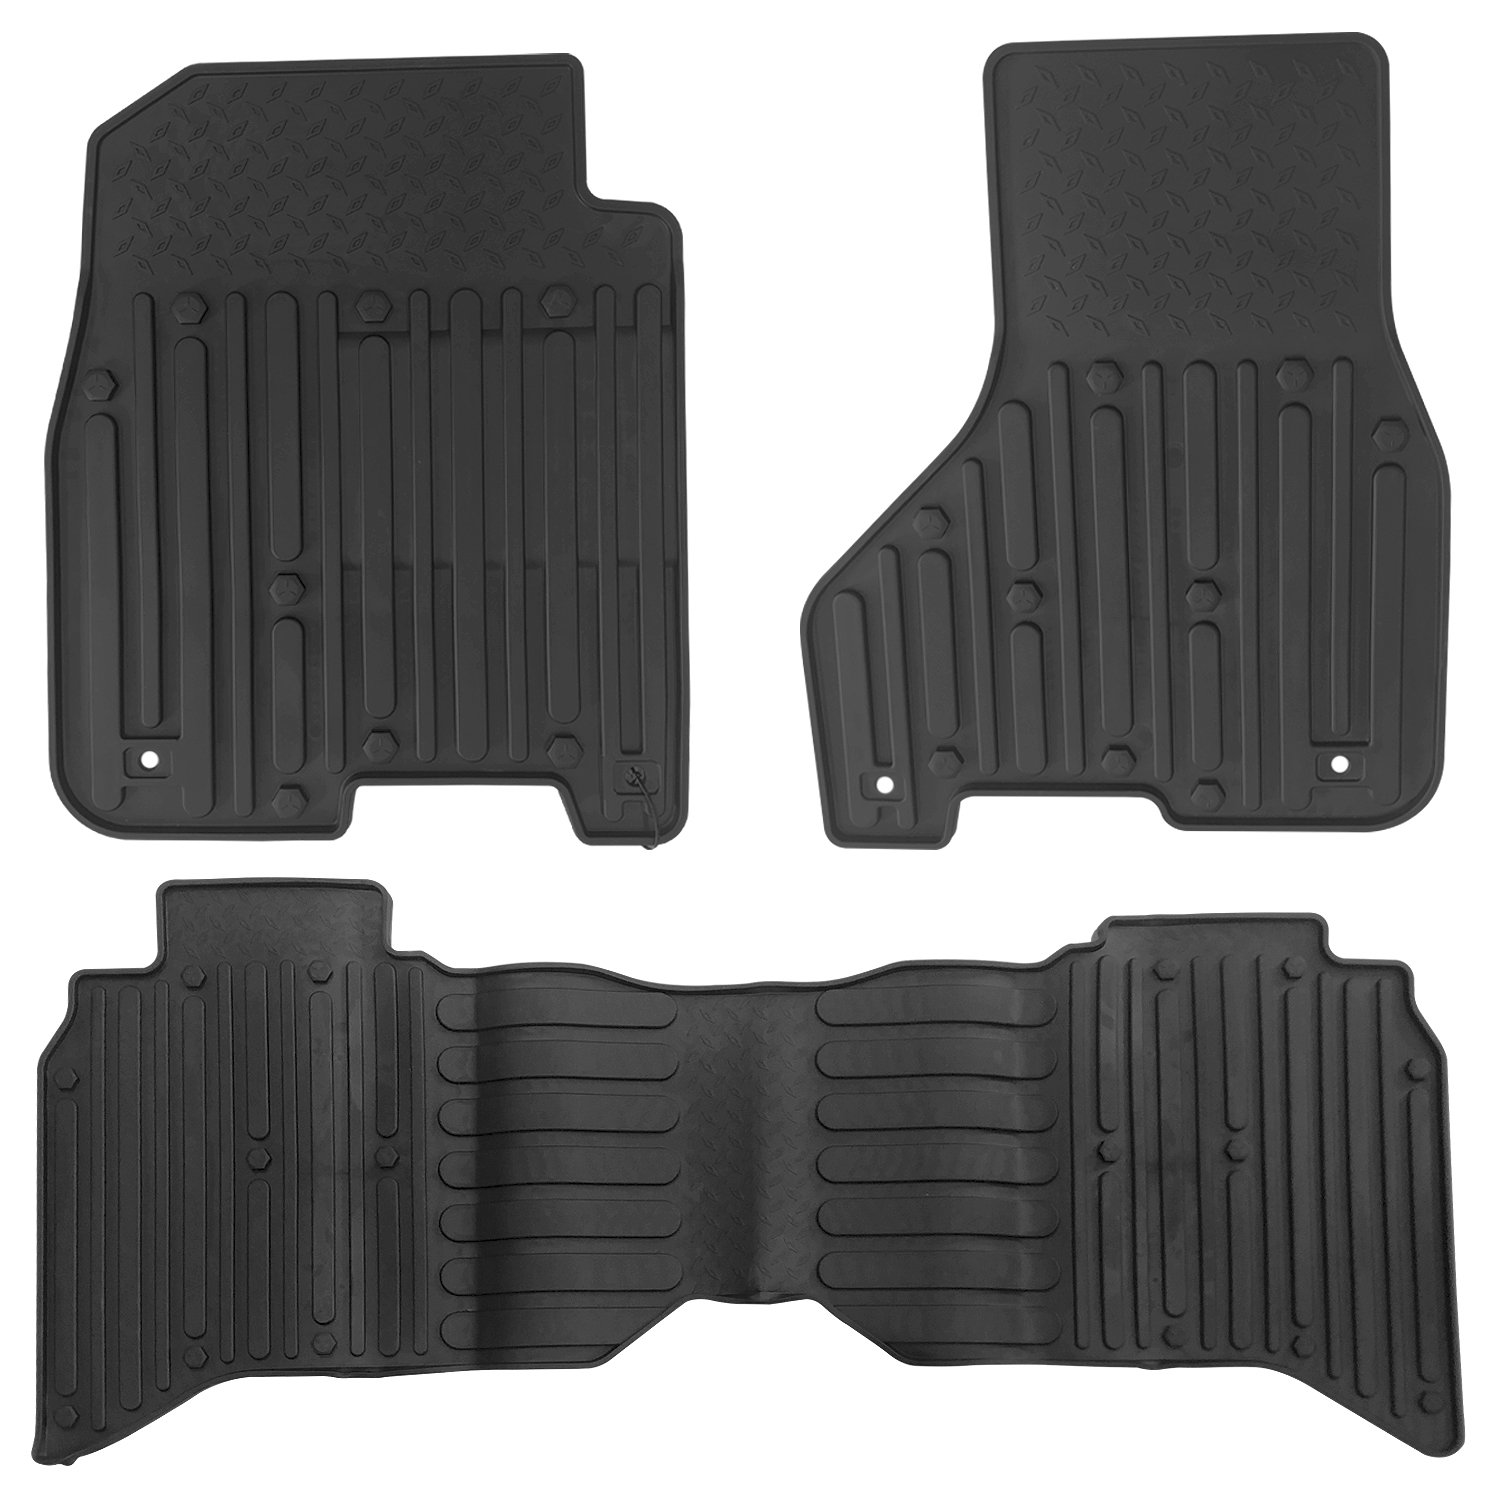 All Weather Floor Mats for Dodge Ram 1500 2500 3500 4500 5500 Crew Cab 2013 2014 2015 2016 2017 Runner Front and Rear Set Heavy Duty Rubber Car Carpet Trunk Mat Liners Black Red Odorless